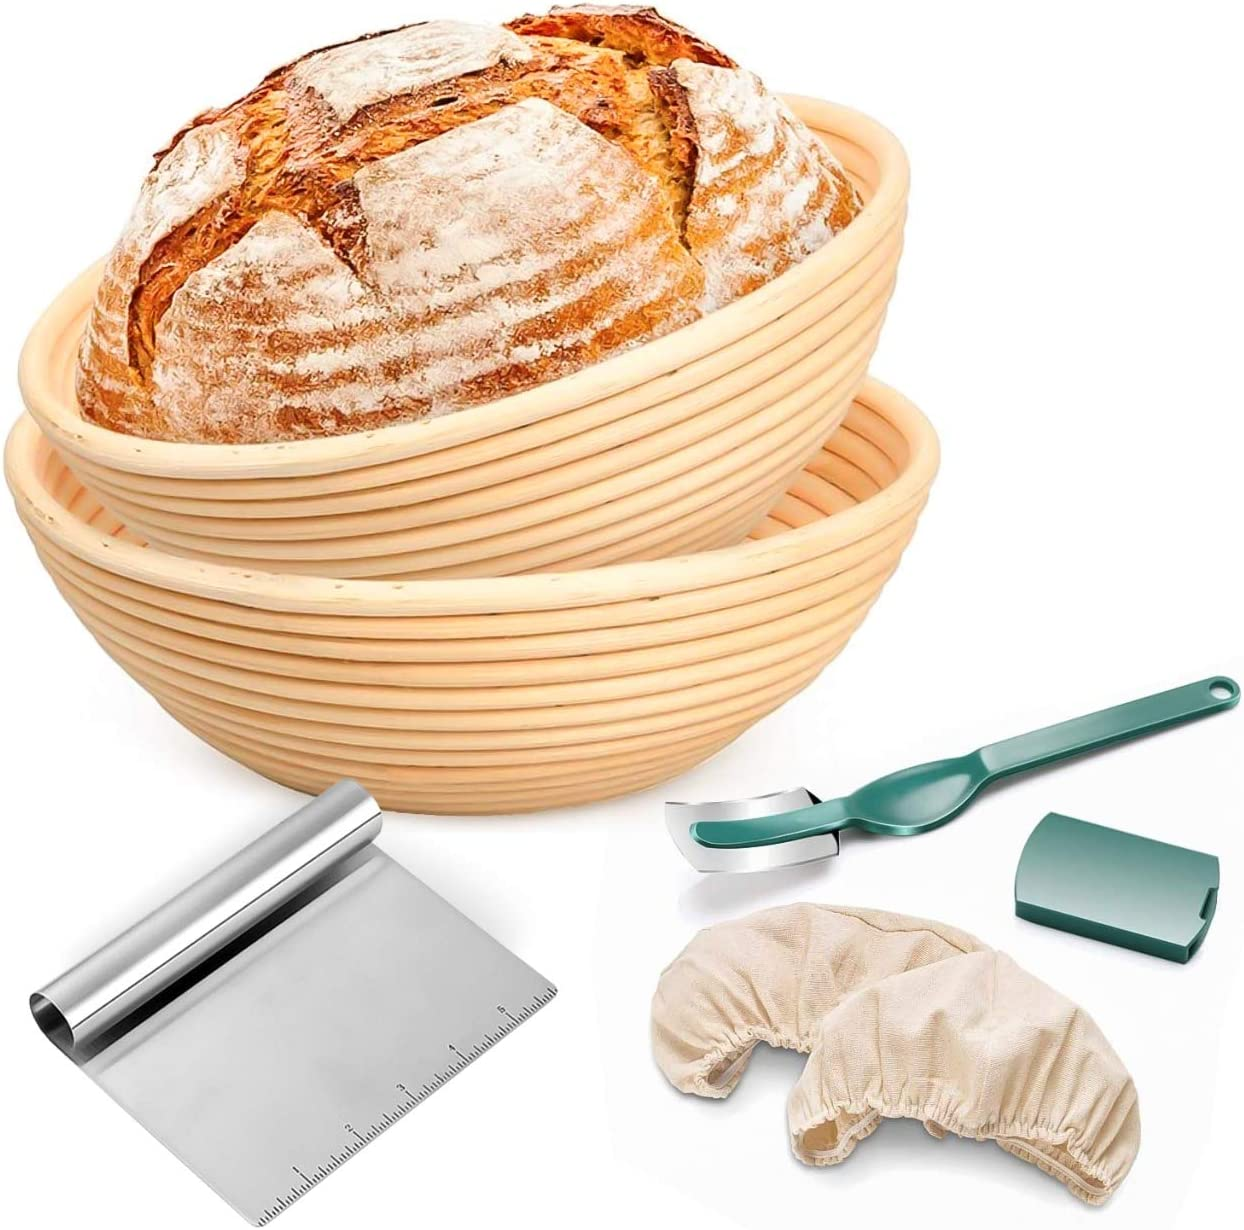 Round Banneton Proofing Basket Set of 2-9 inch and 10 inch size bread baskets